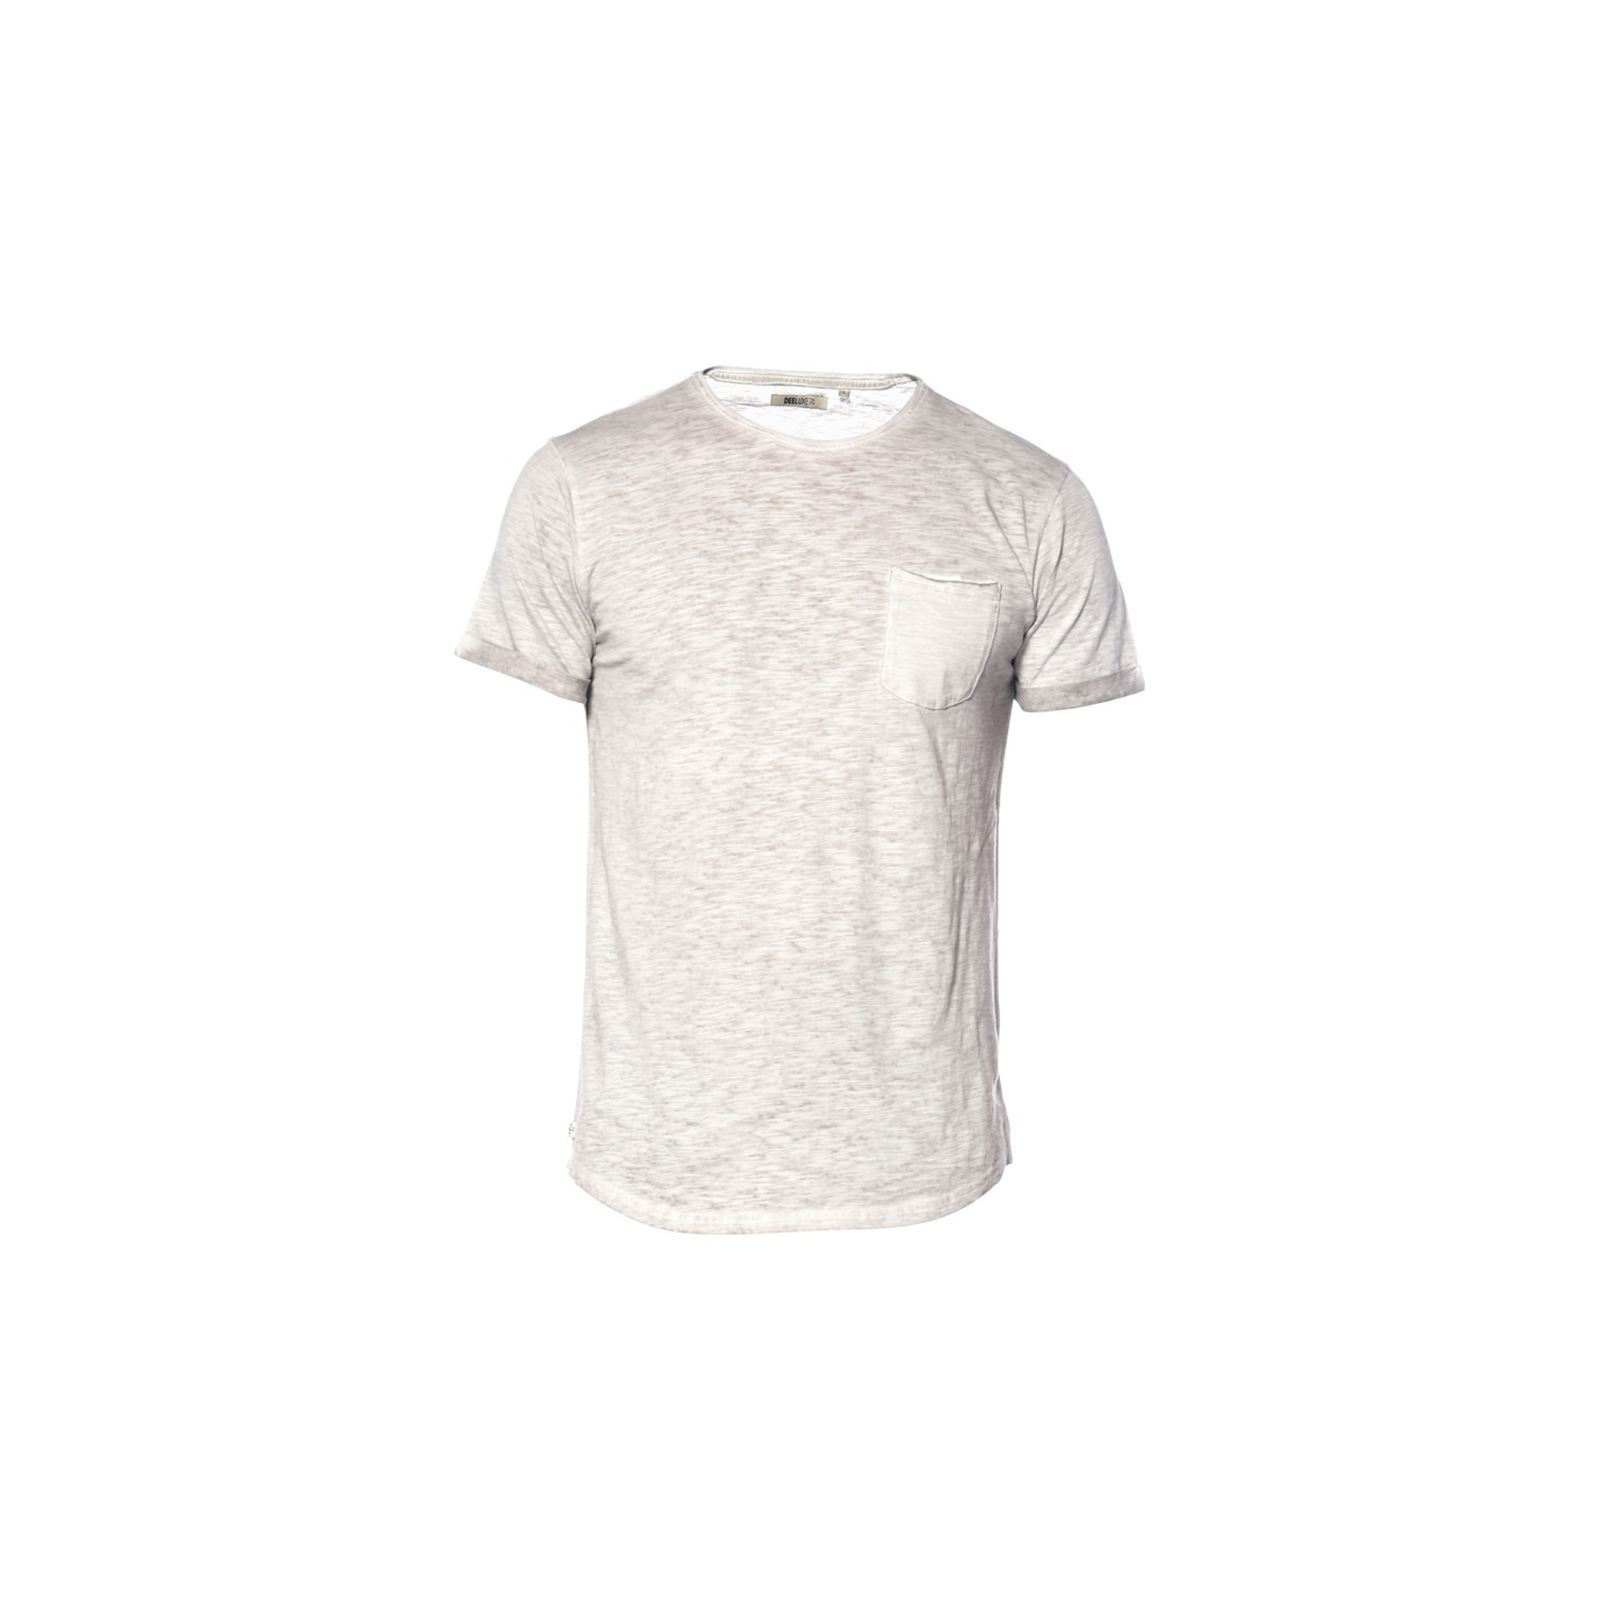 Deeluxe shirt Courtes Homme Manches Clair V BarnyT Gris xdorBeCW